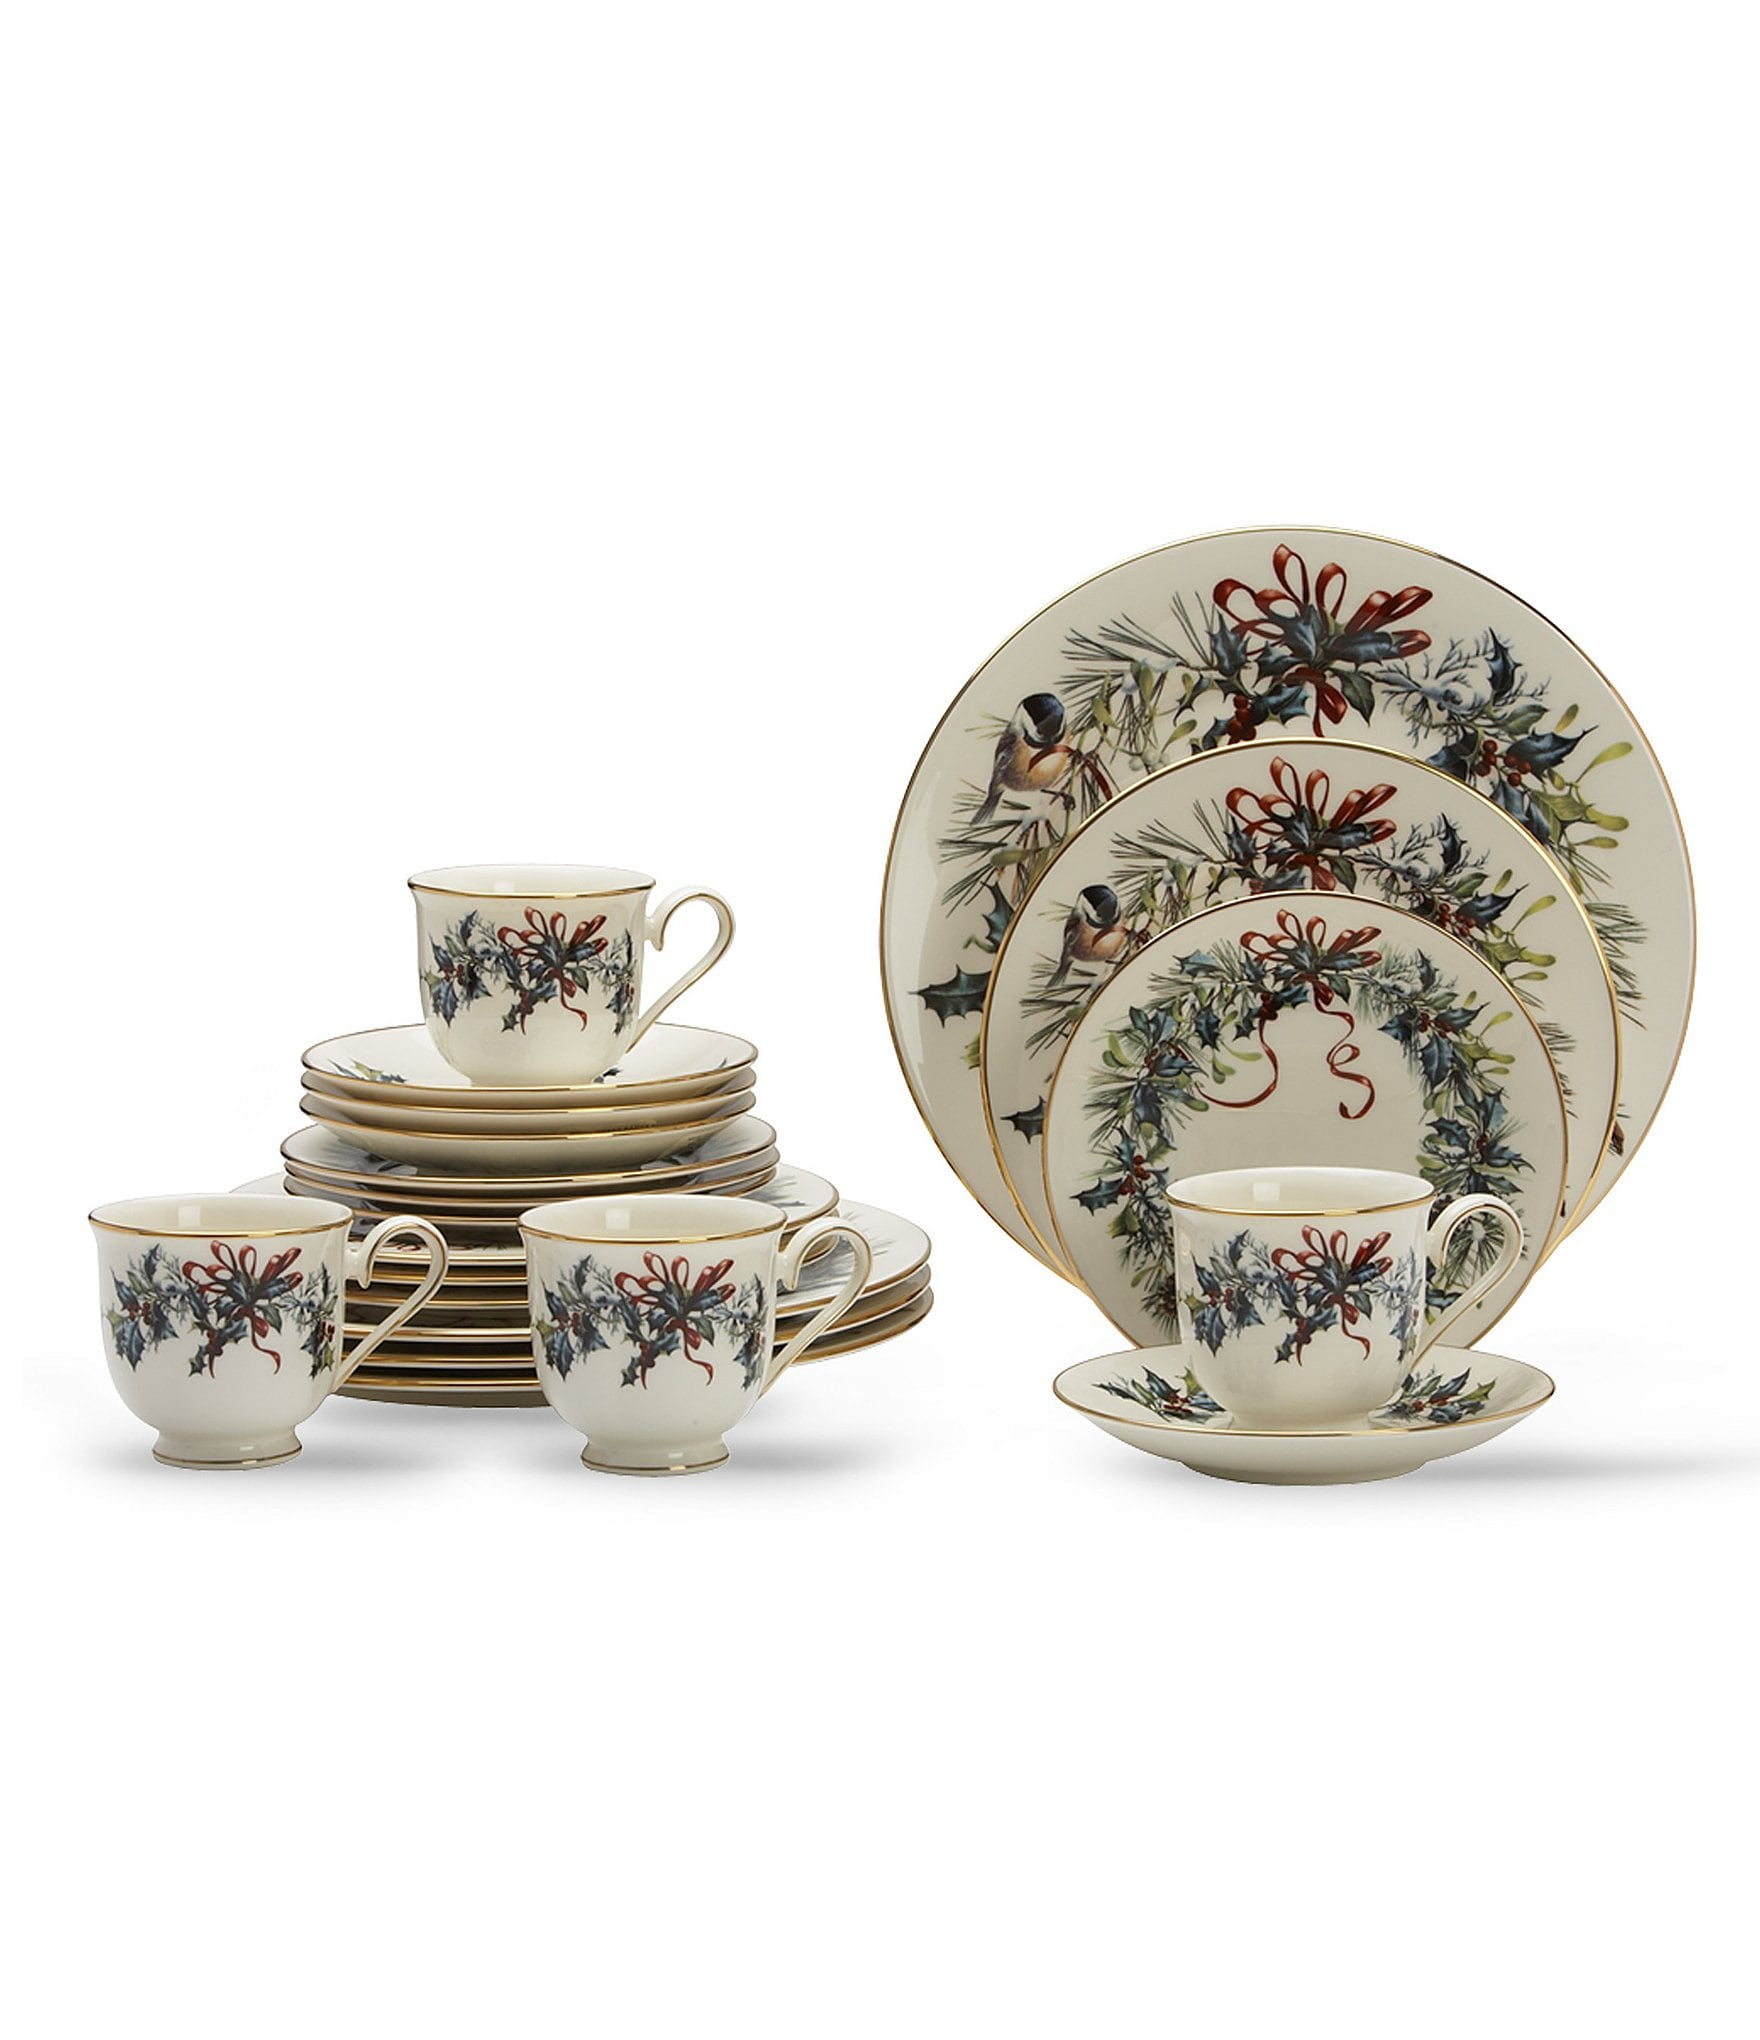 Lenox winter greetings dinnerware castrophotos lenox winter greetings china dillards m4hsunfo